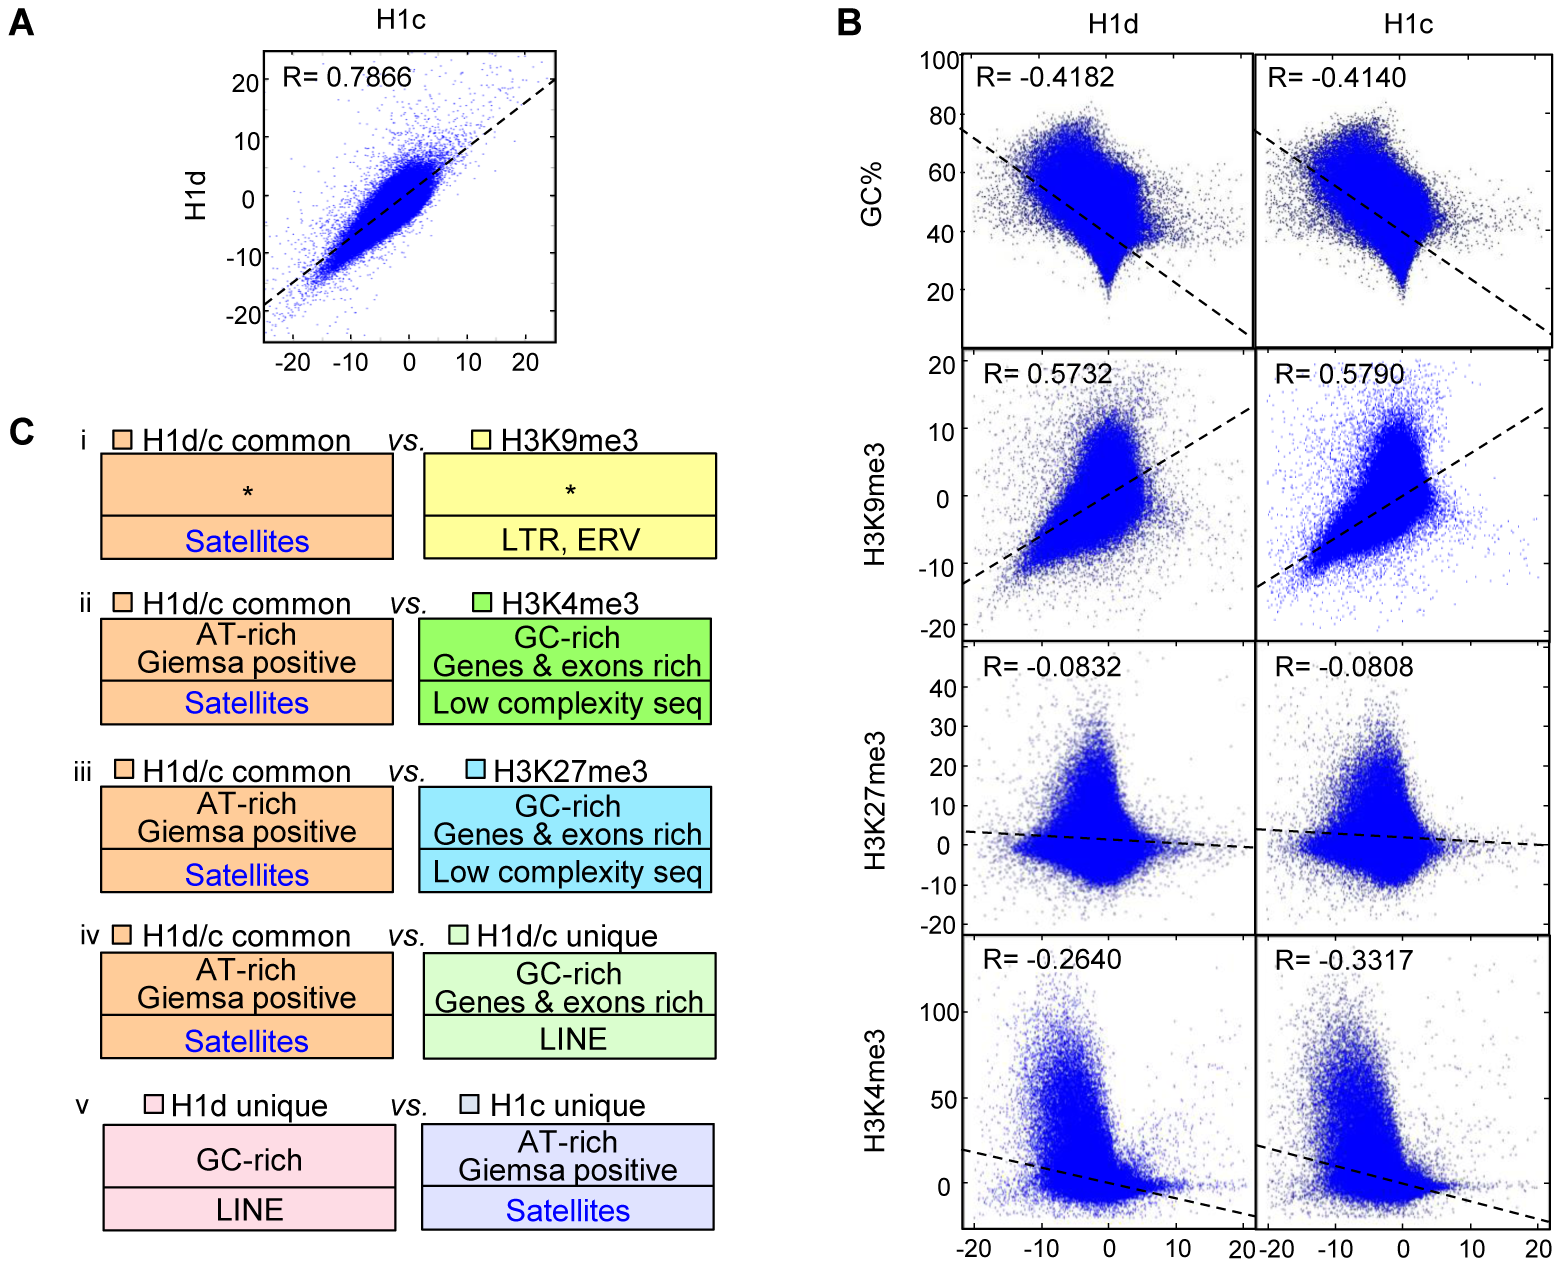 Correlation and over-representation analyses of H1 variants and histone marks.